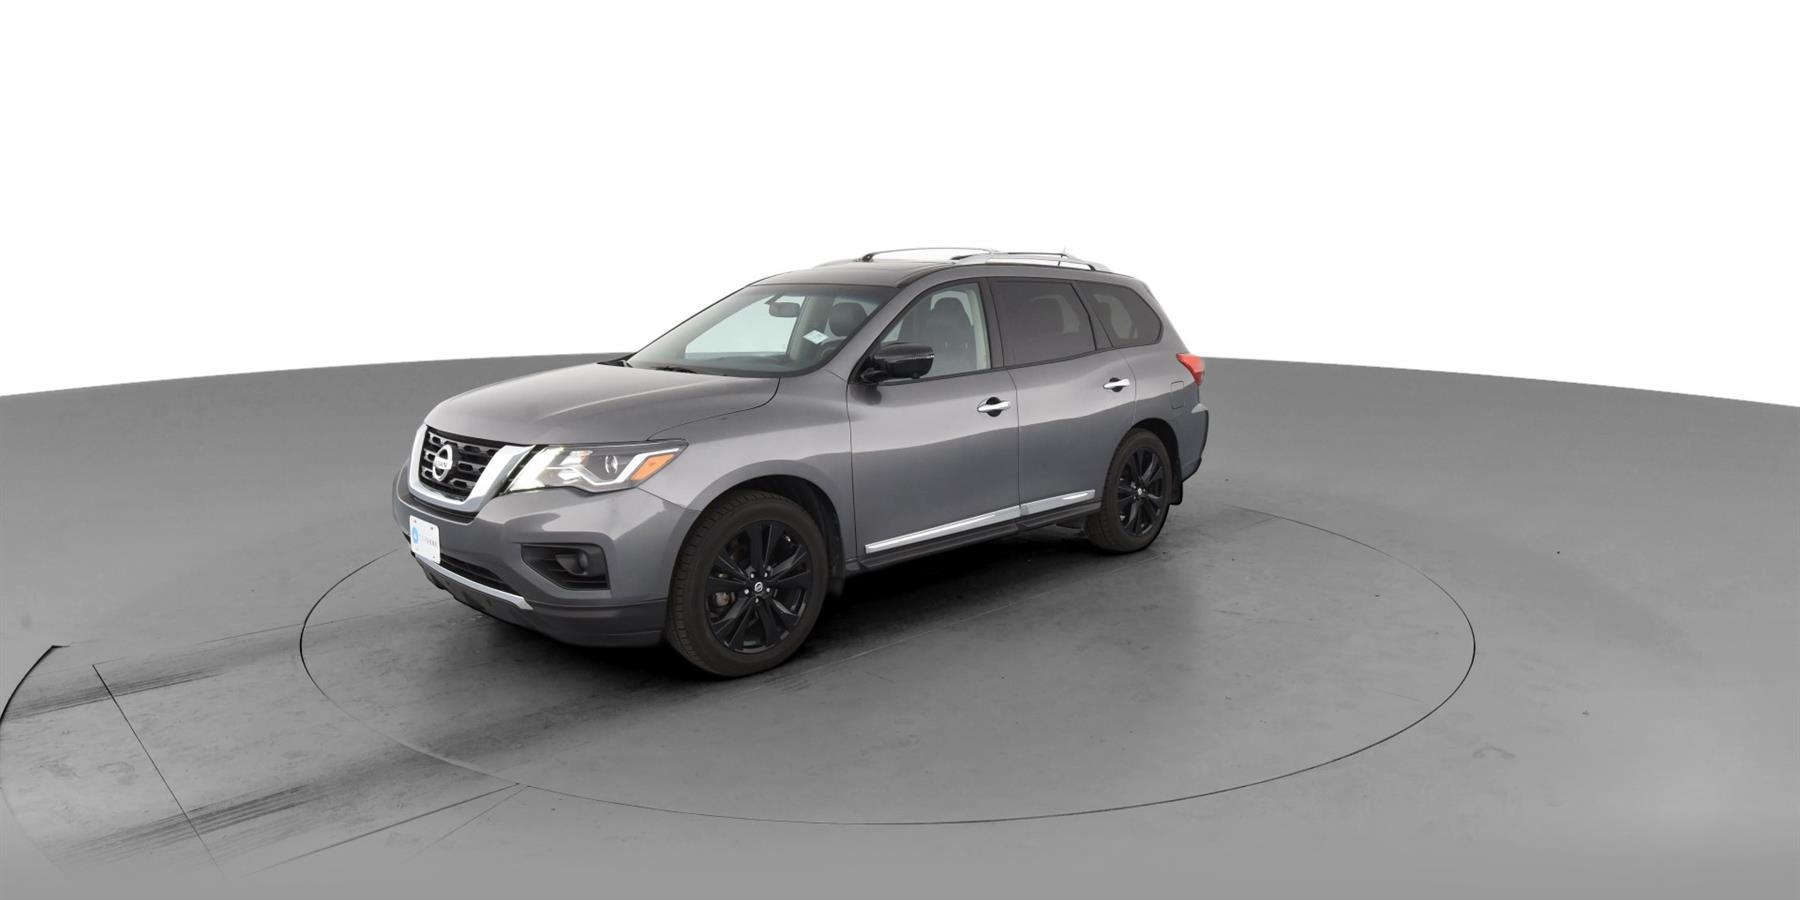 2017 Nissan Pathfinder Platinum Sport Utility 4D for Sale | Carvana®